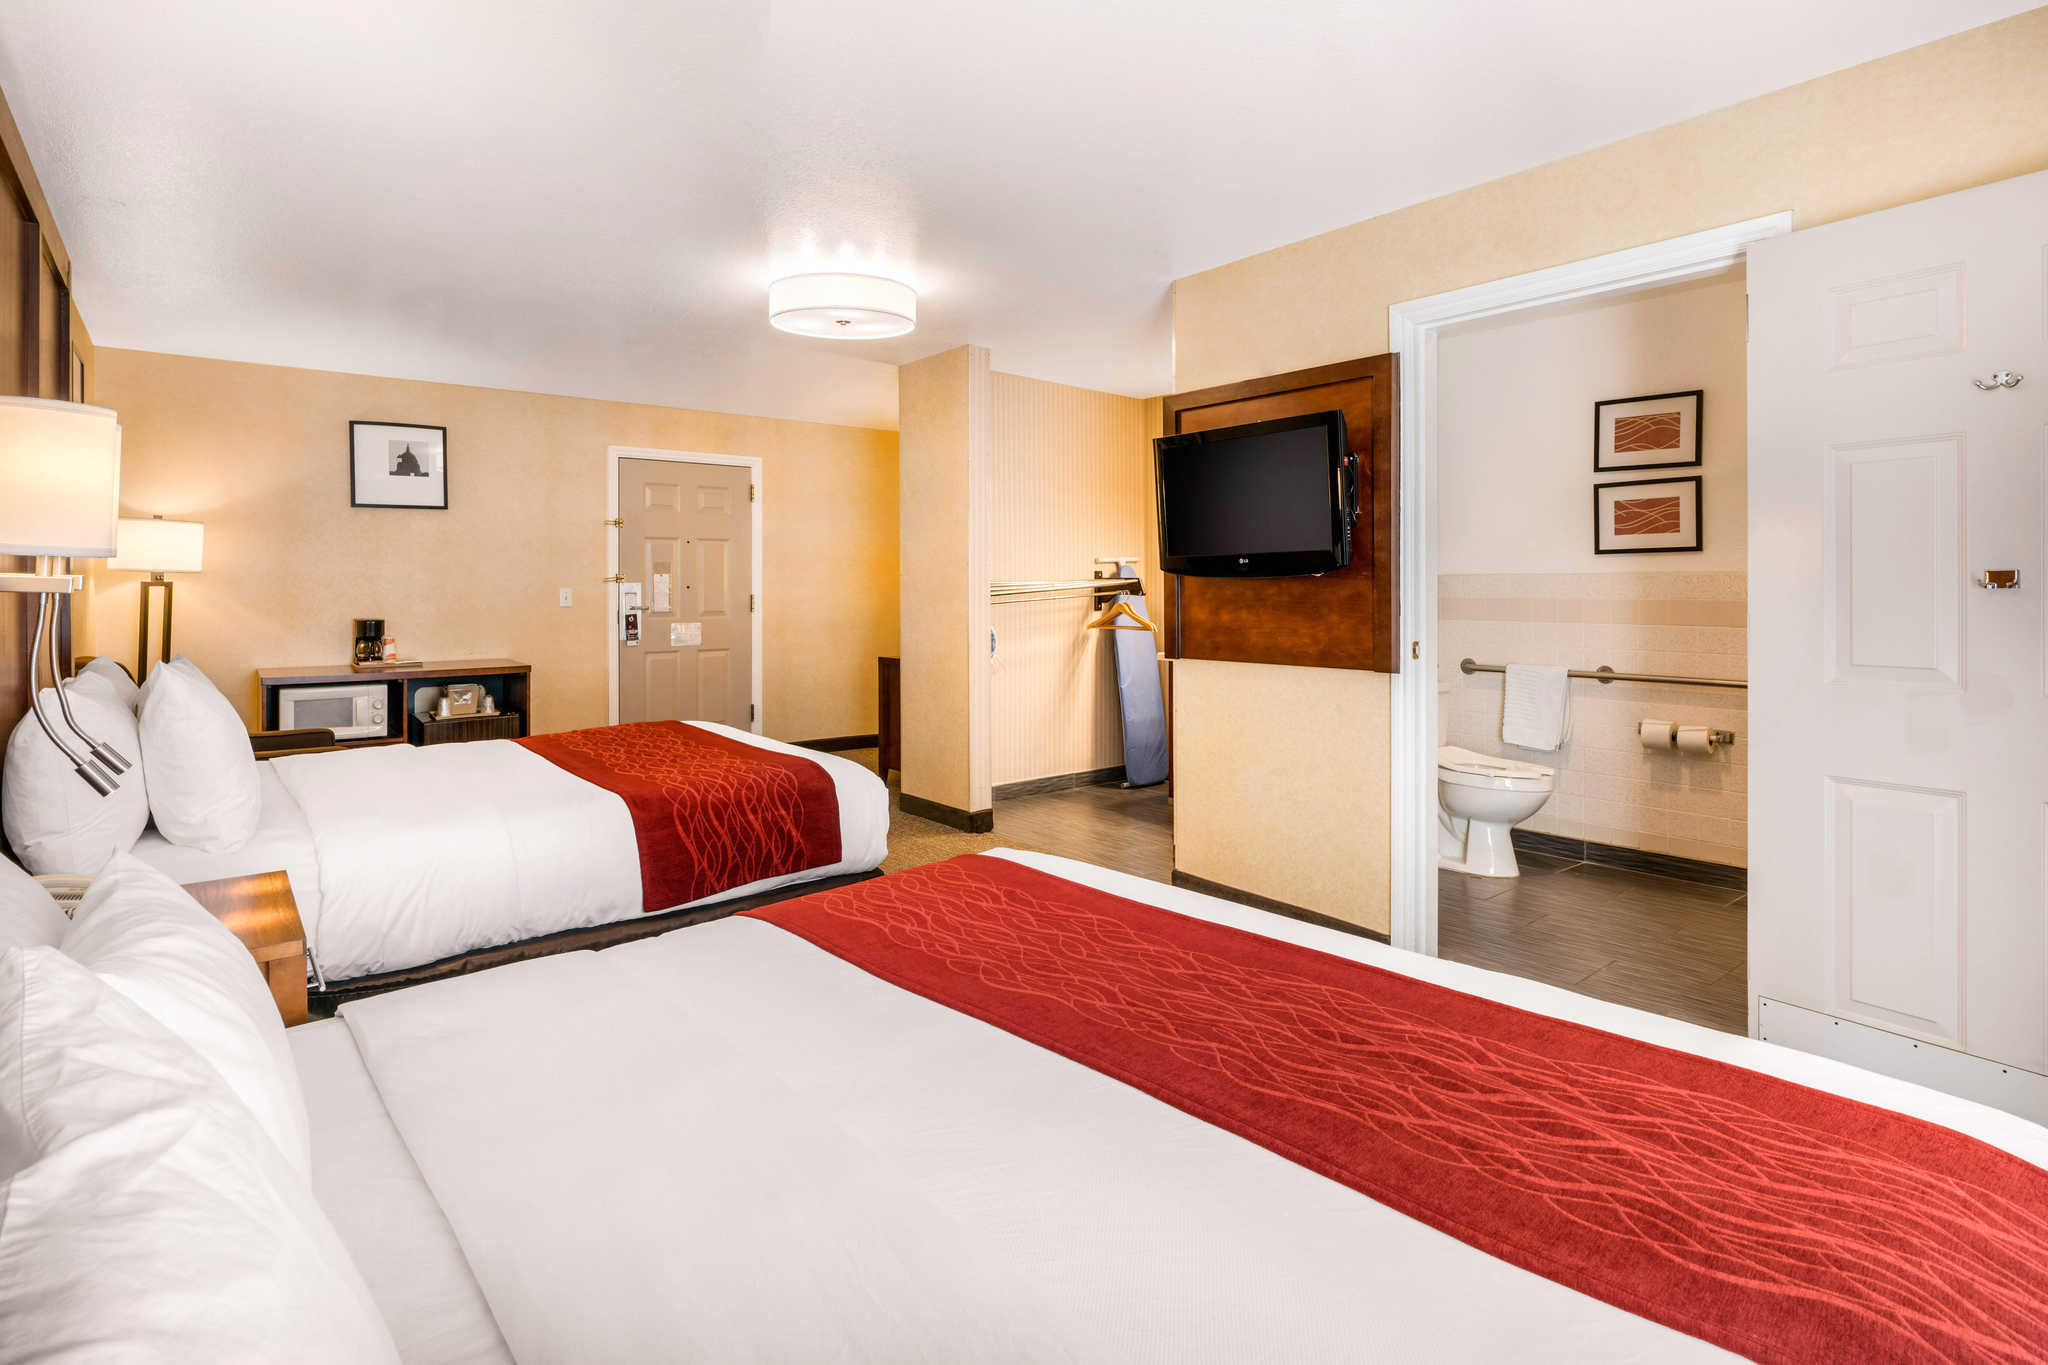 Comfort Inn Red Bluff Coupons Red Bluff CA near me | 8coupons